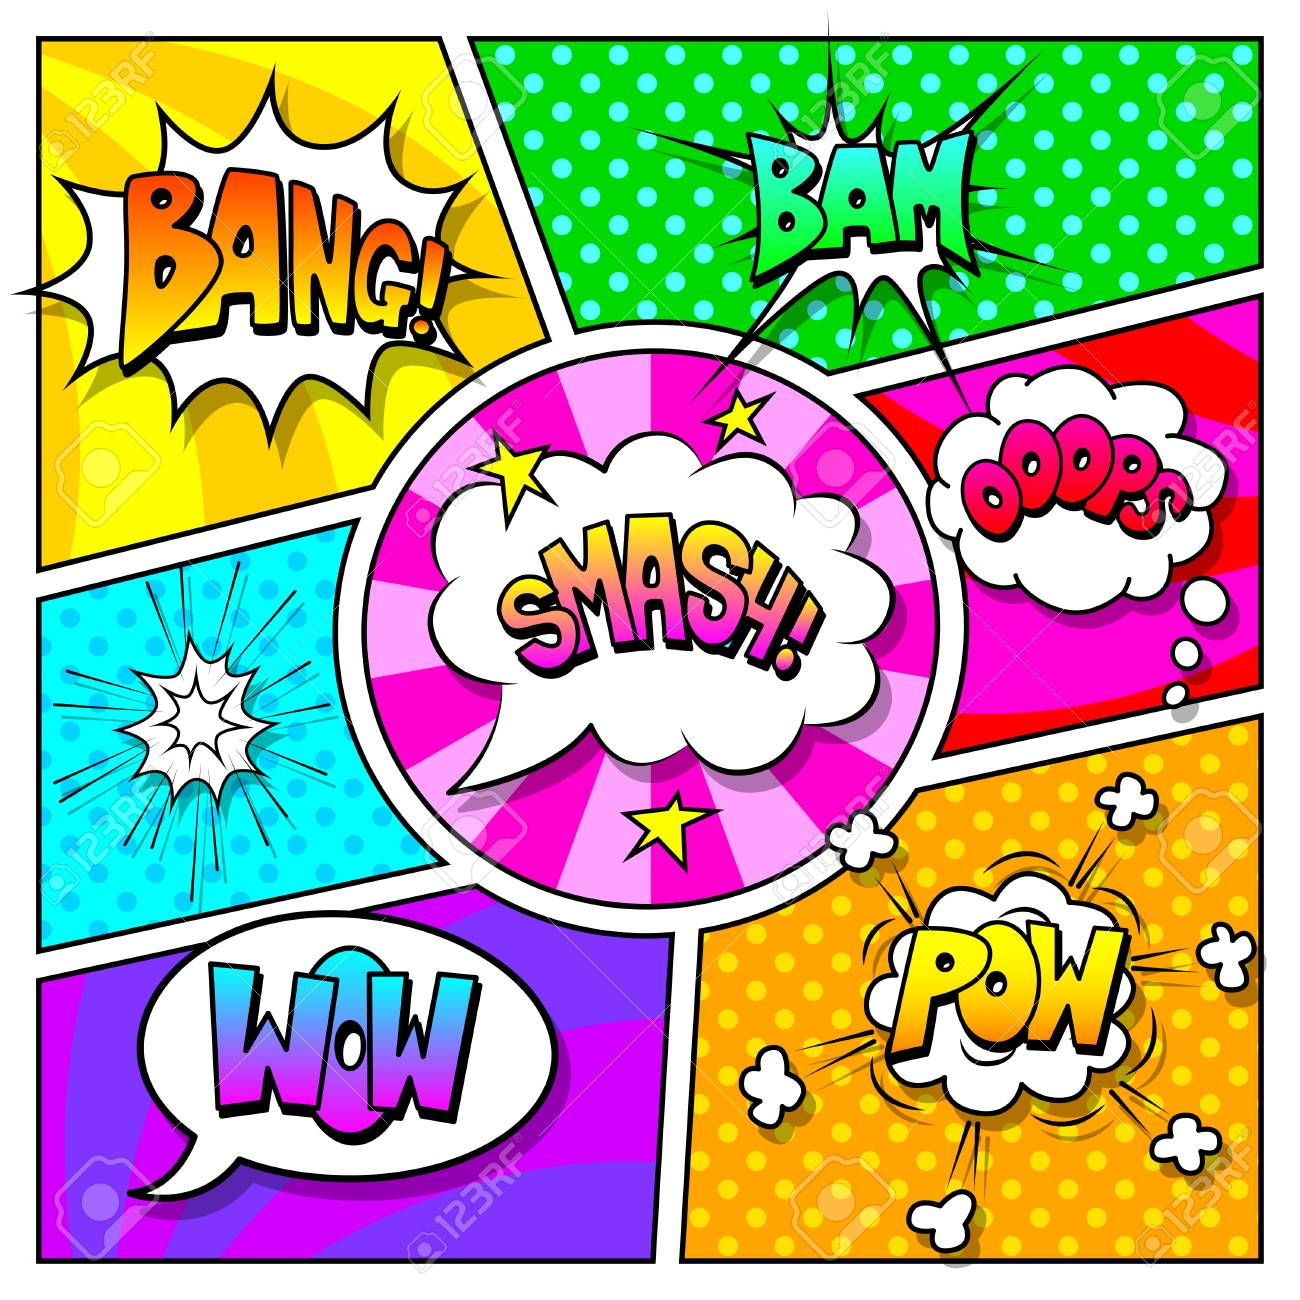 speech bubbles and sound effects on comic book page vector